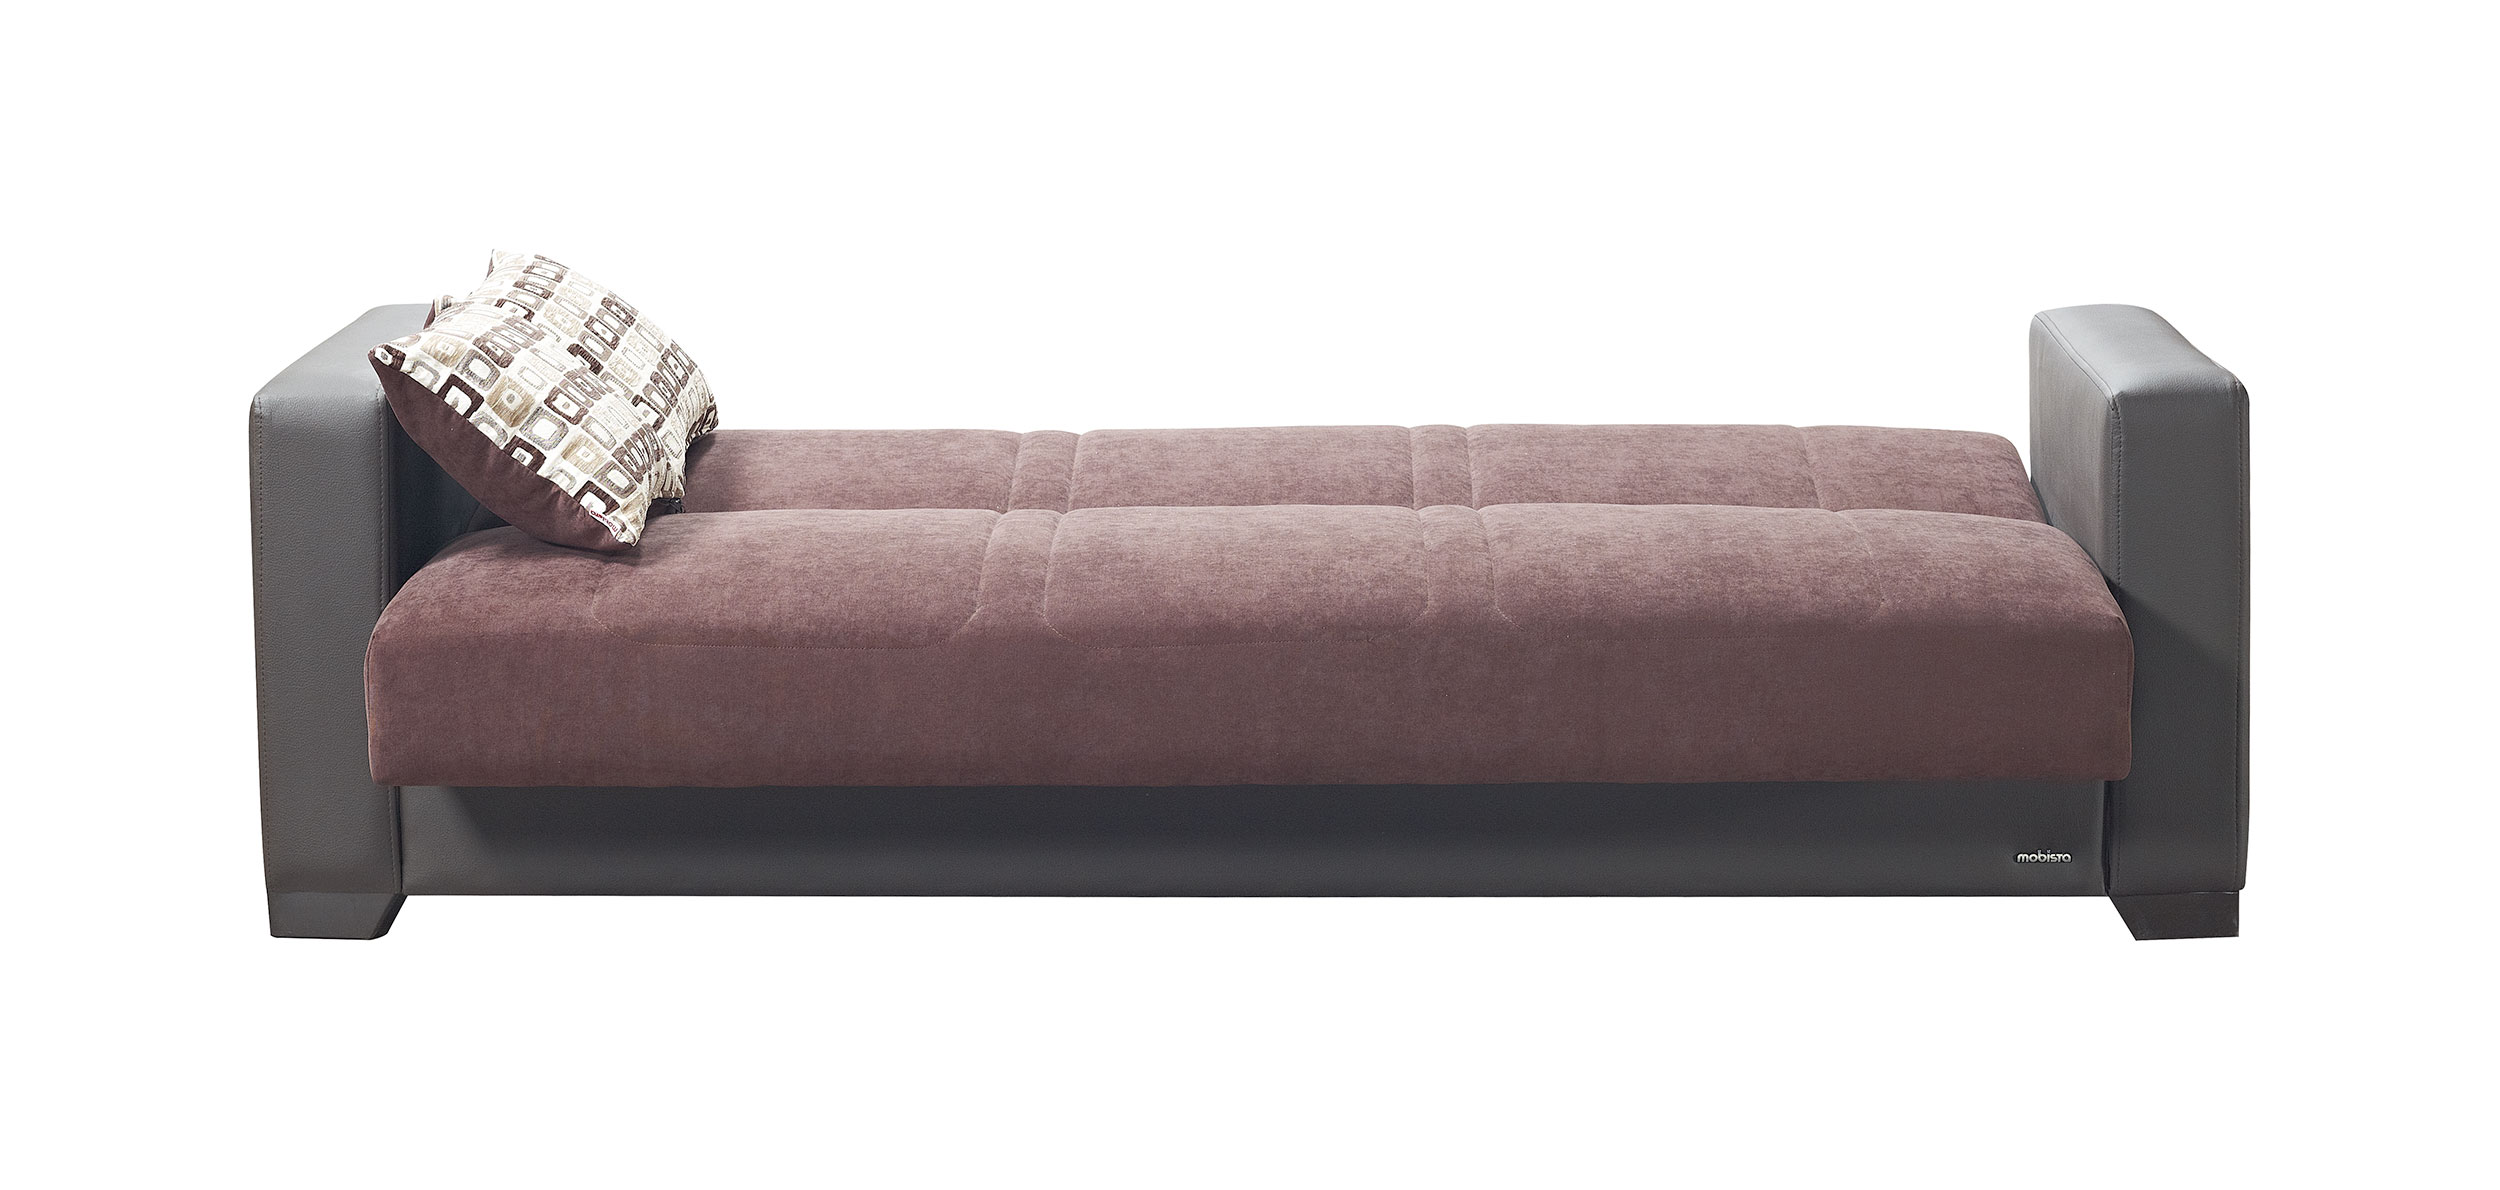 mexico futon sofa bed with mattress chocolate lazy boy relaxon carisma by mobista